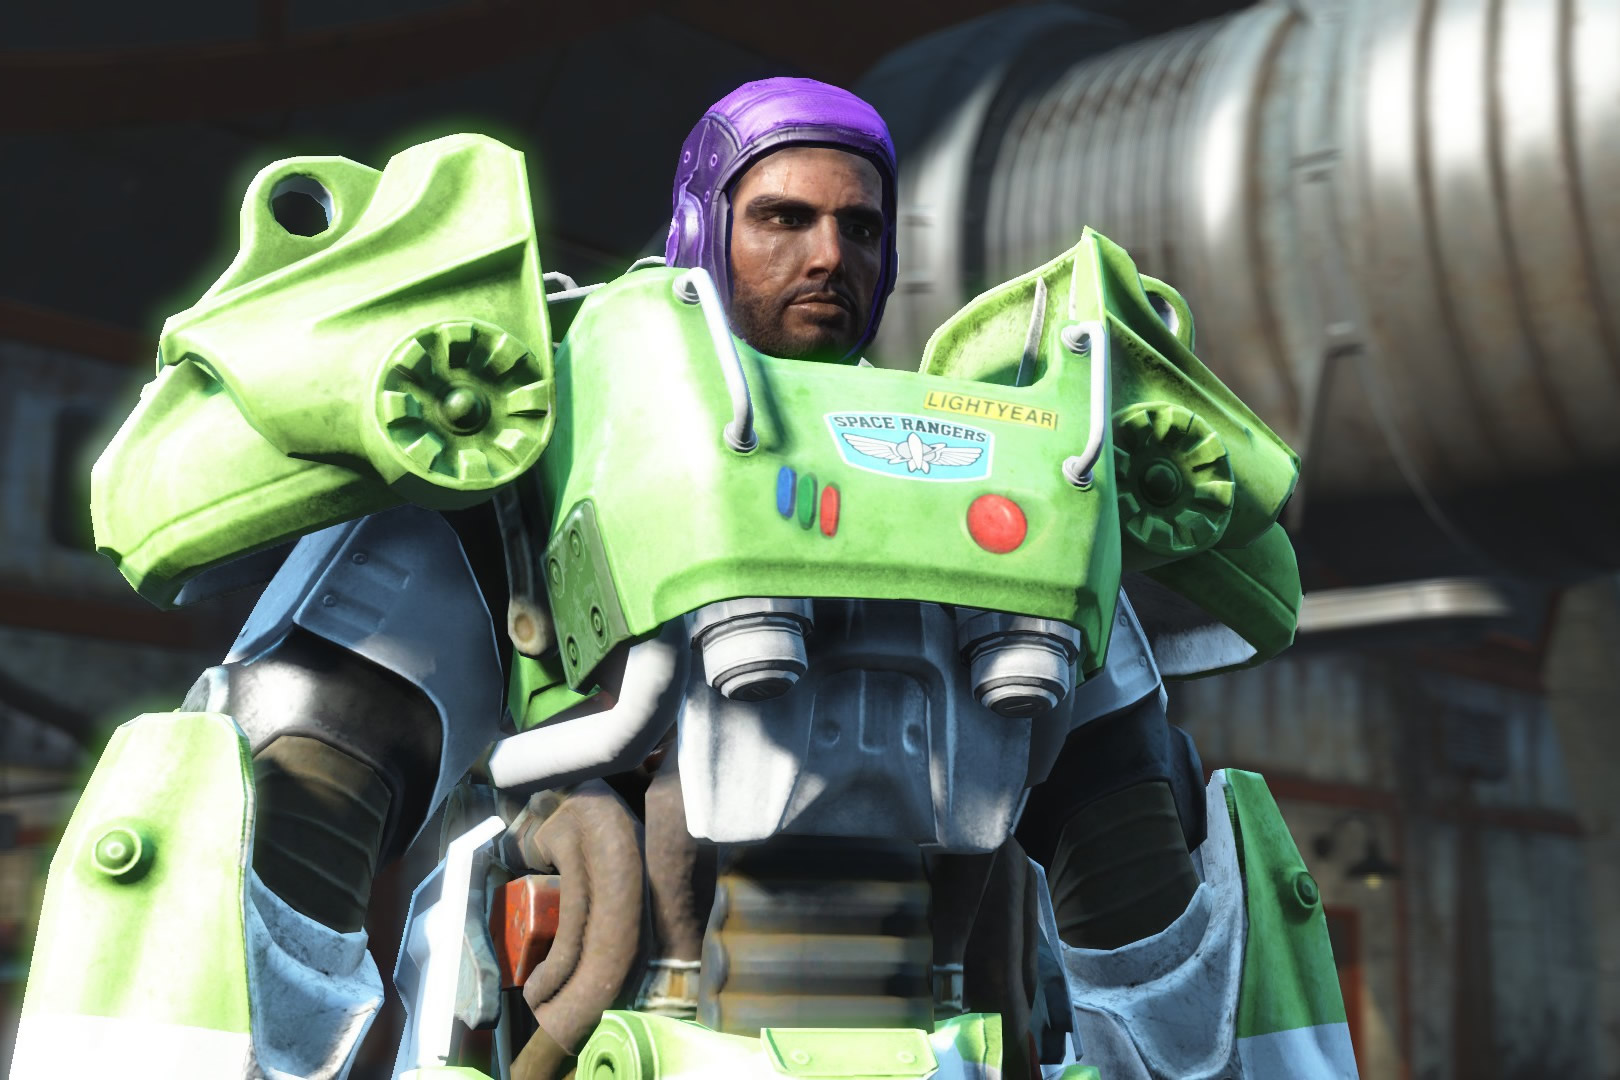 Bethesda says it s working to improve Fallout 4 mod support on PS4